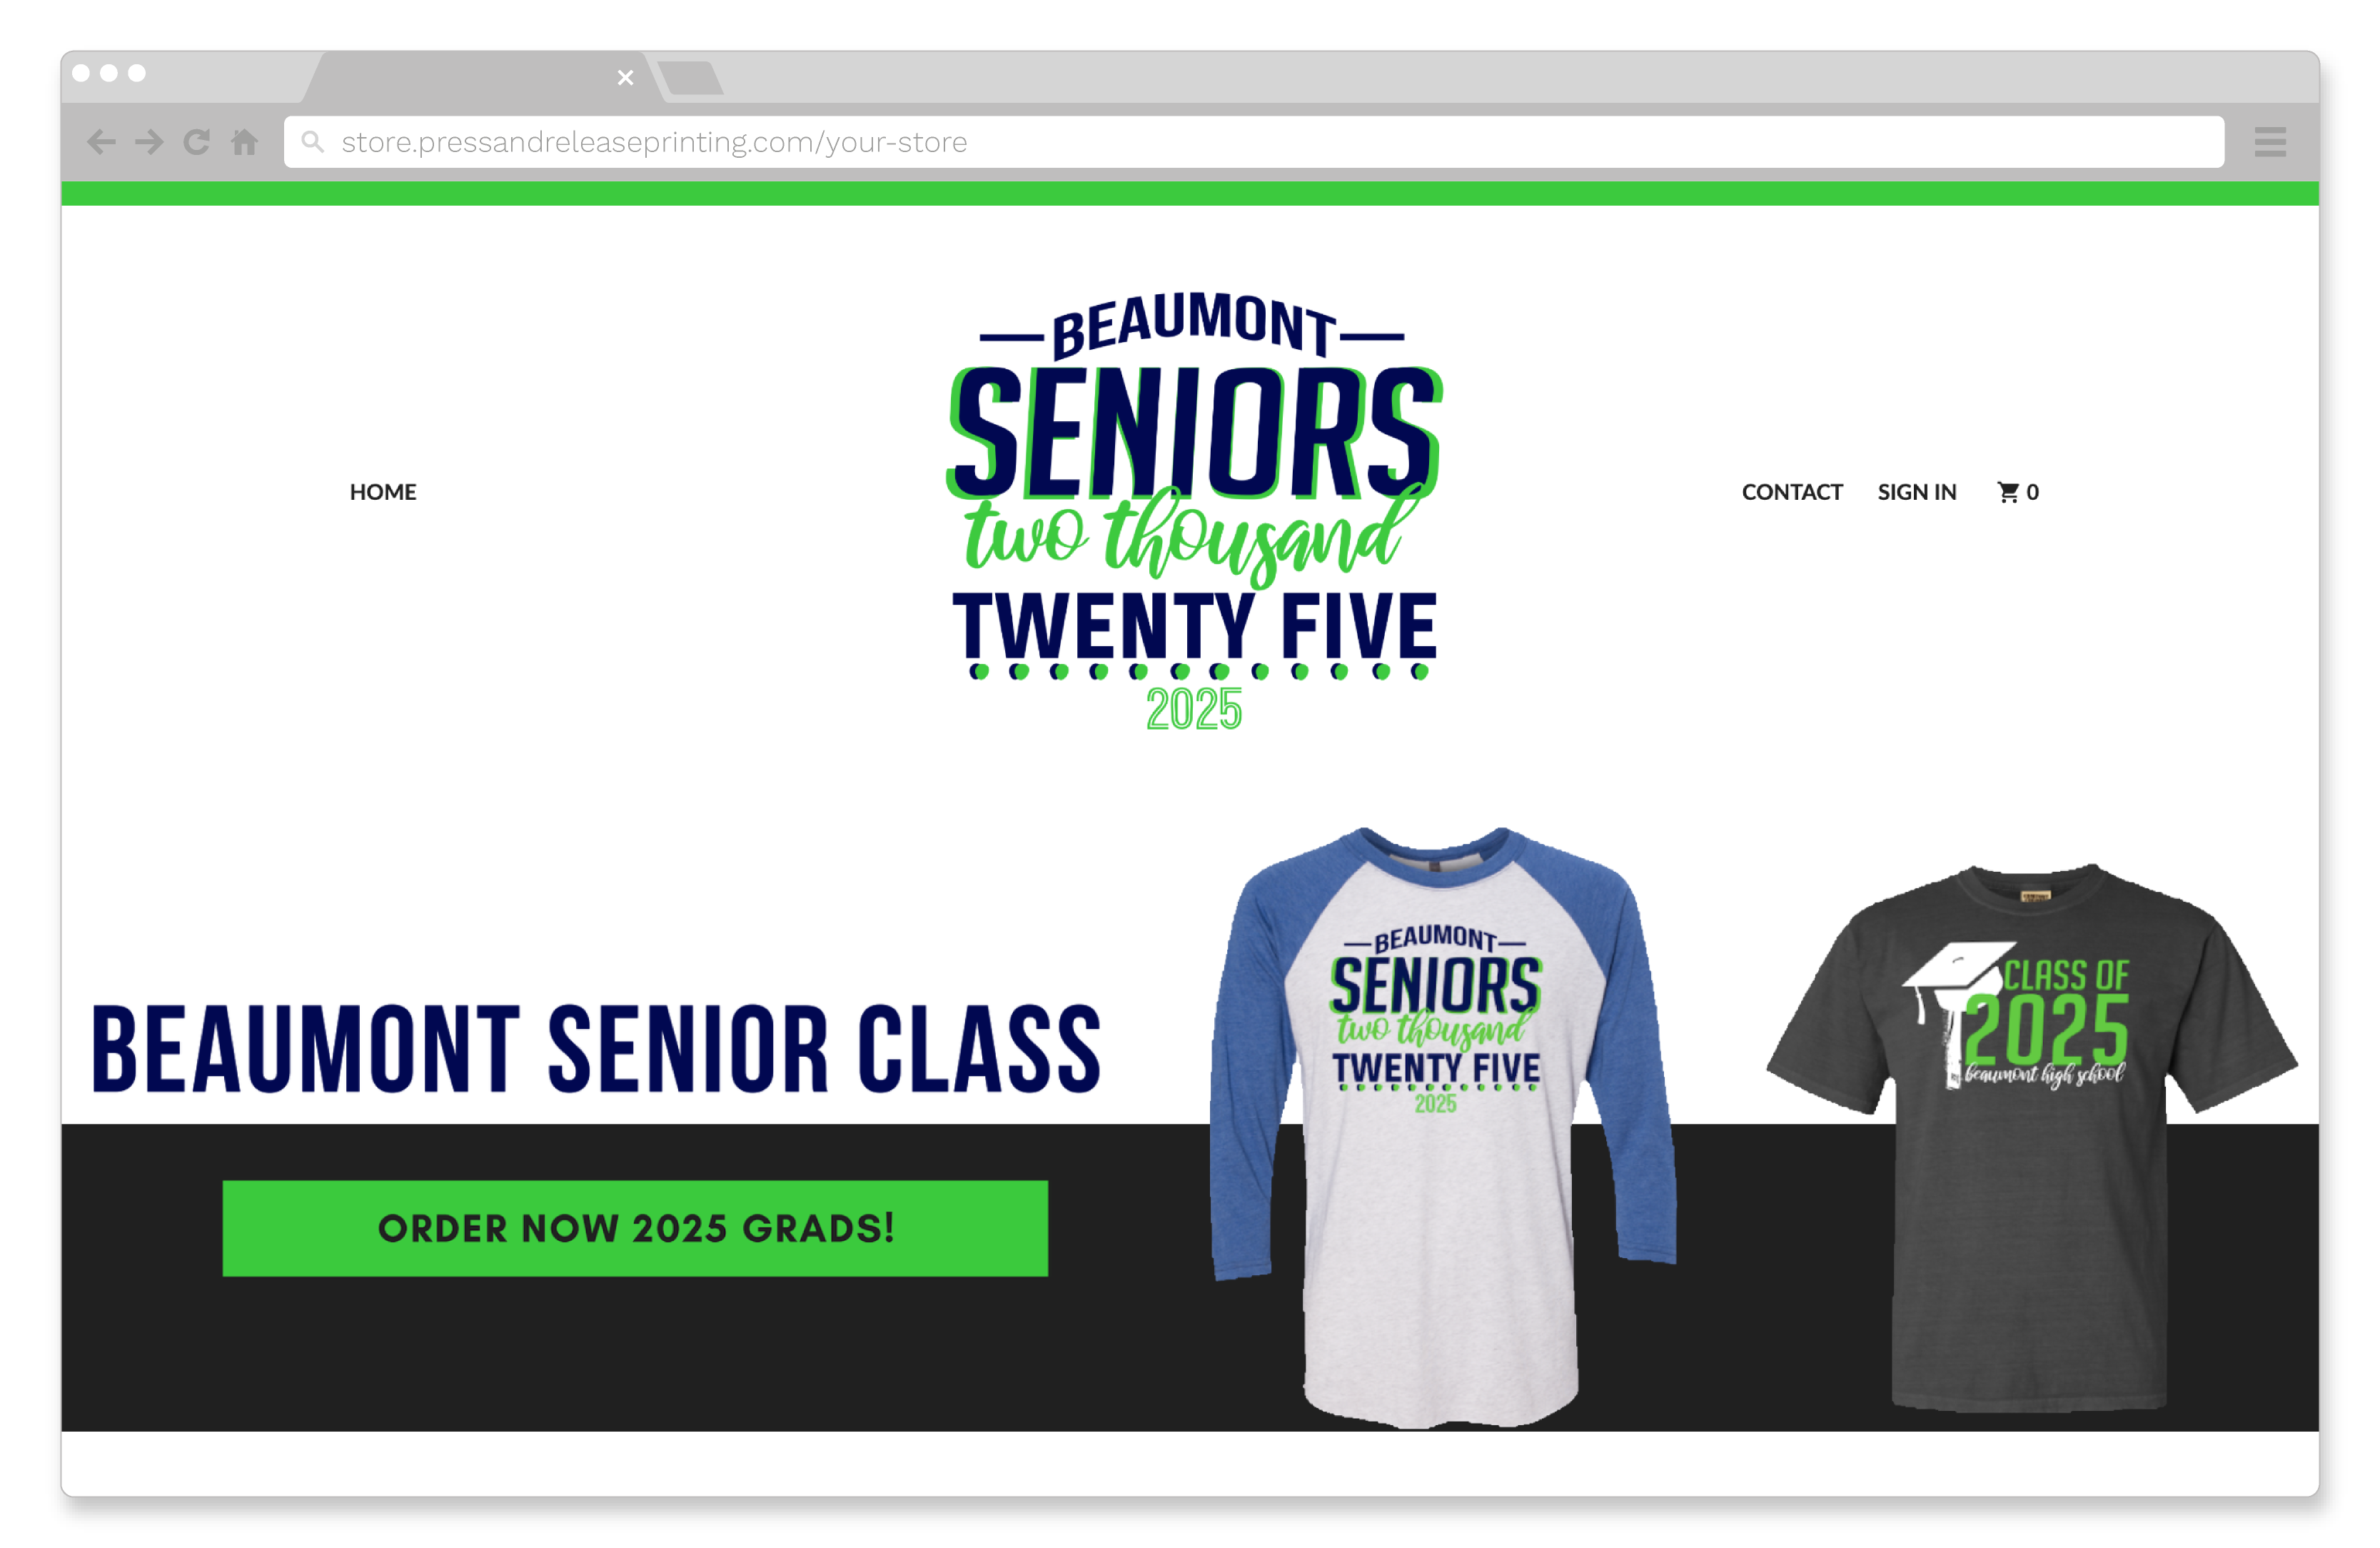 Screenshot of an online store for the senior class of 2025.